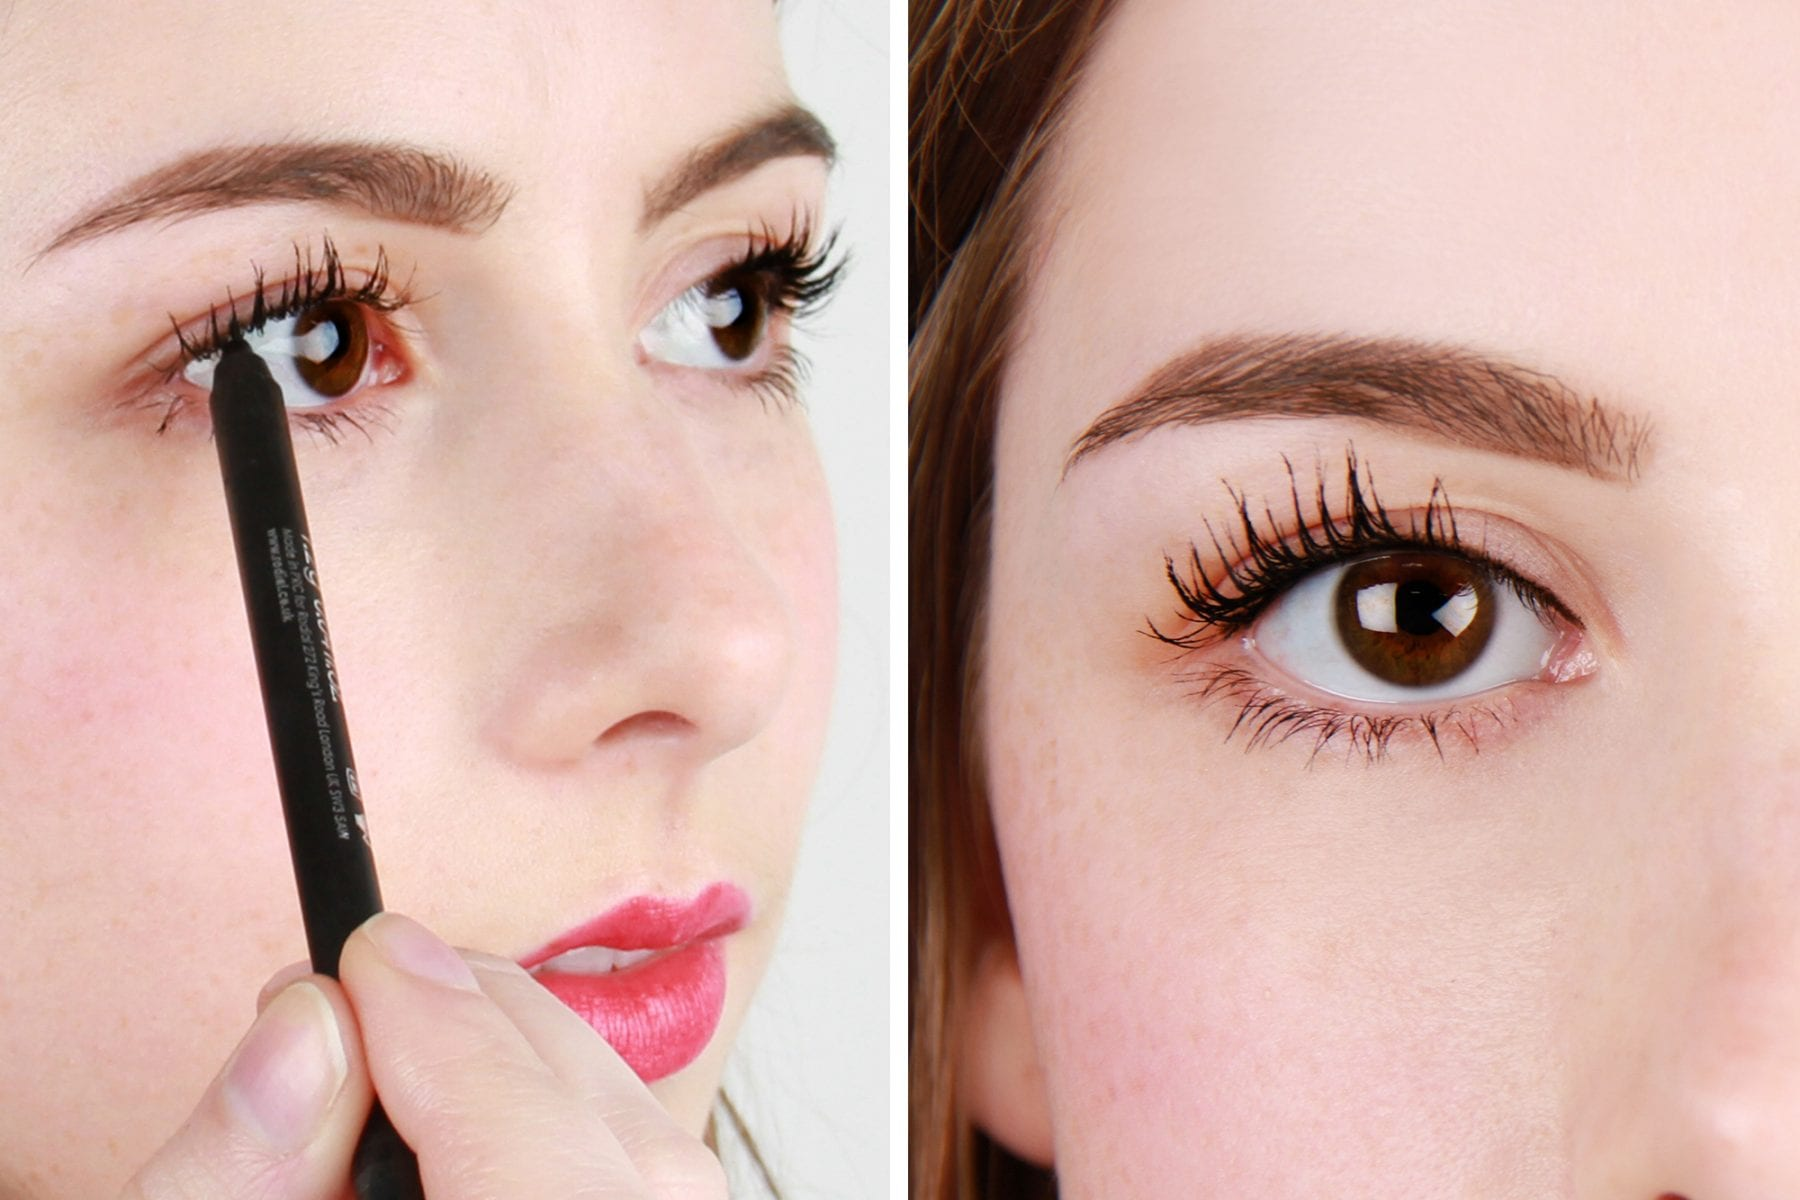 tightlining for fuller-looking lashes